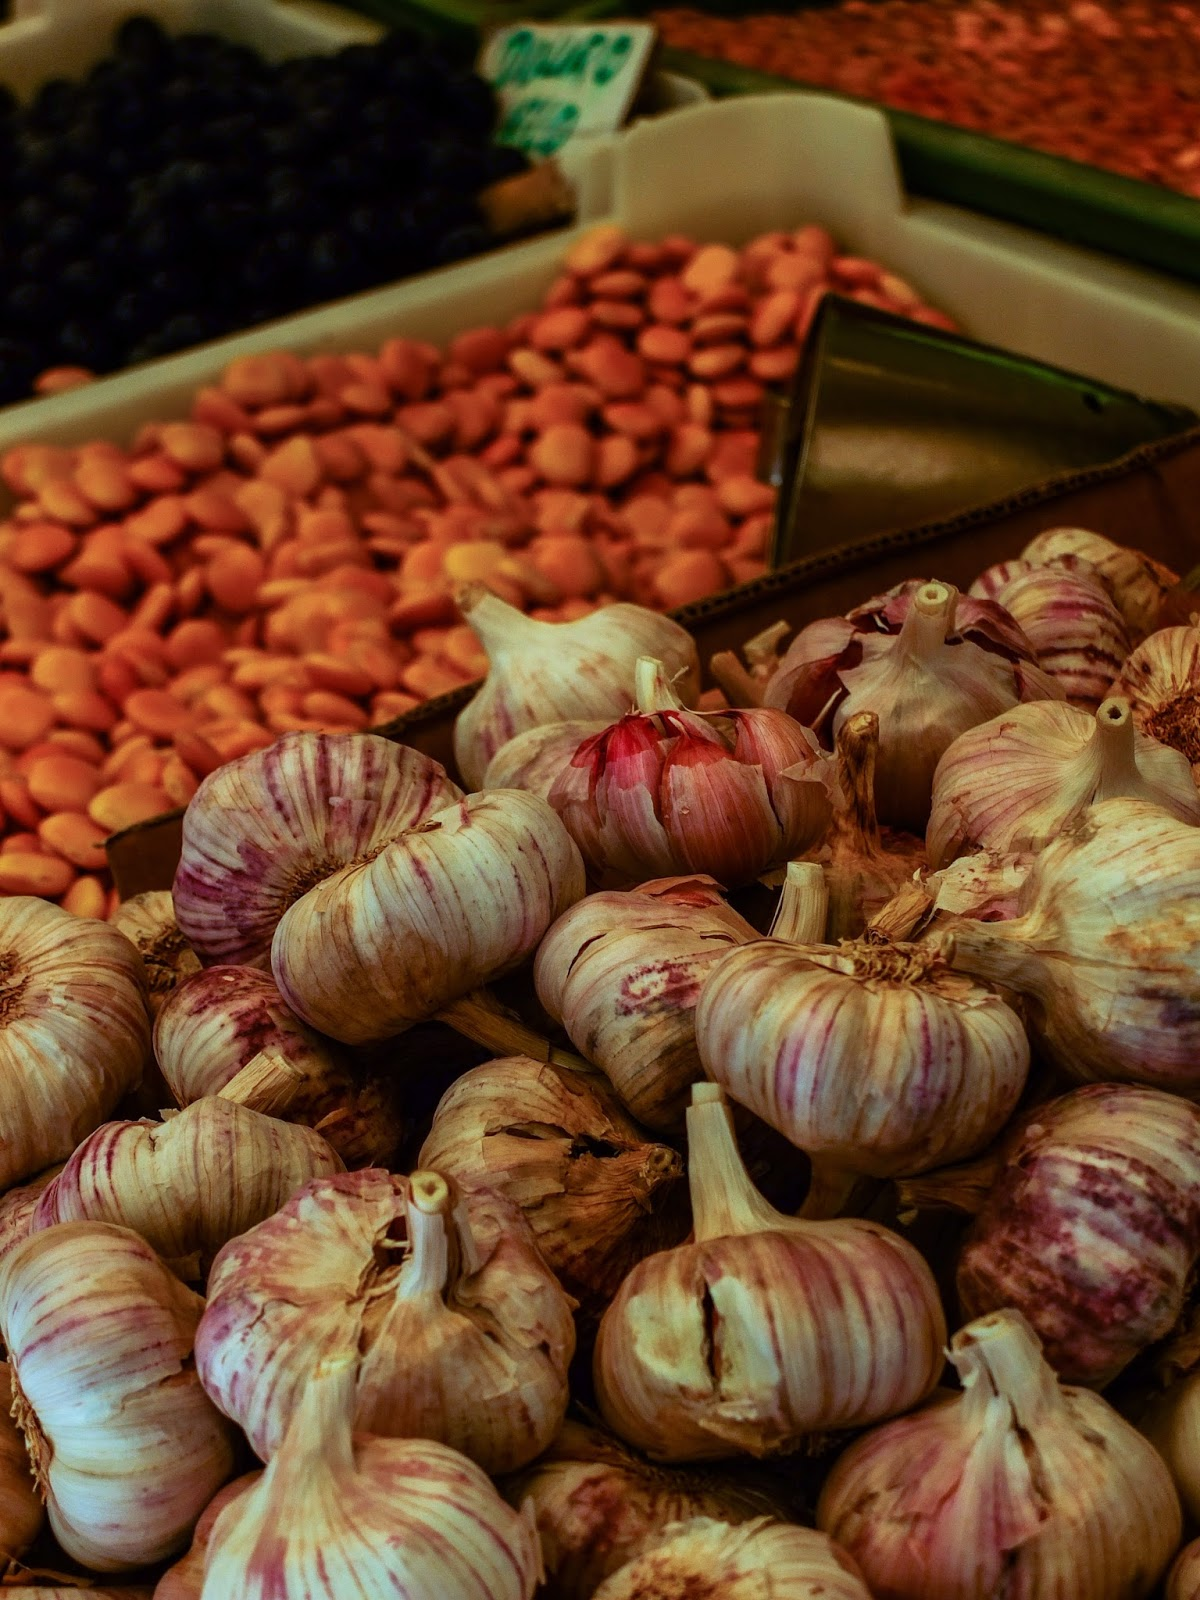 Bulbs of garlic and beans at a market in Porto, Portugal.